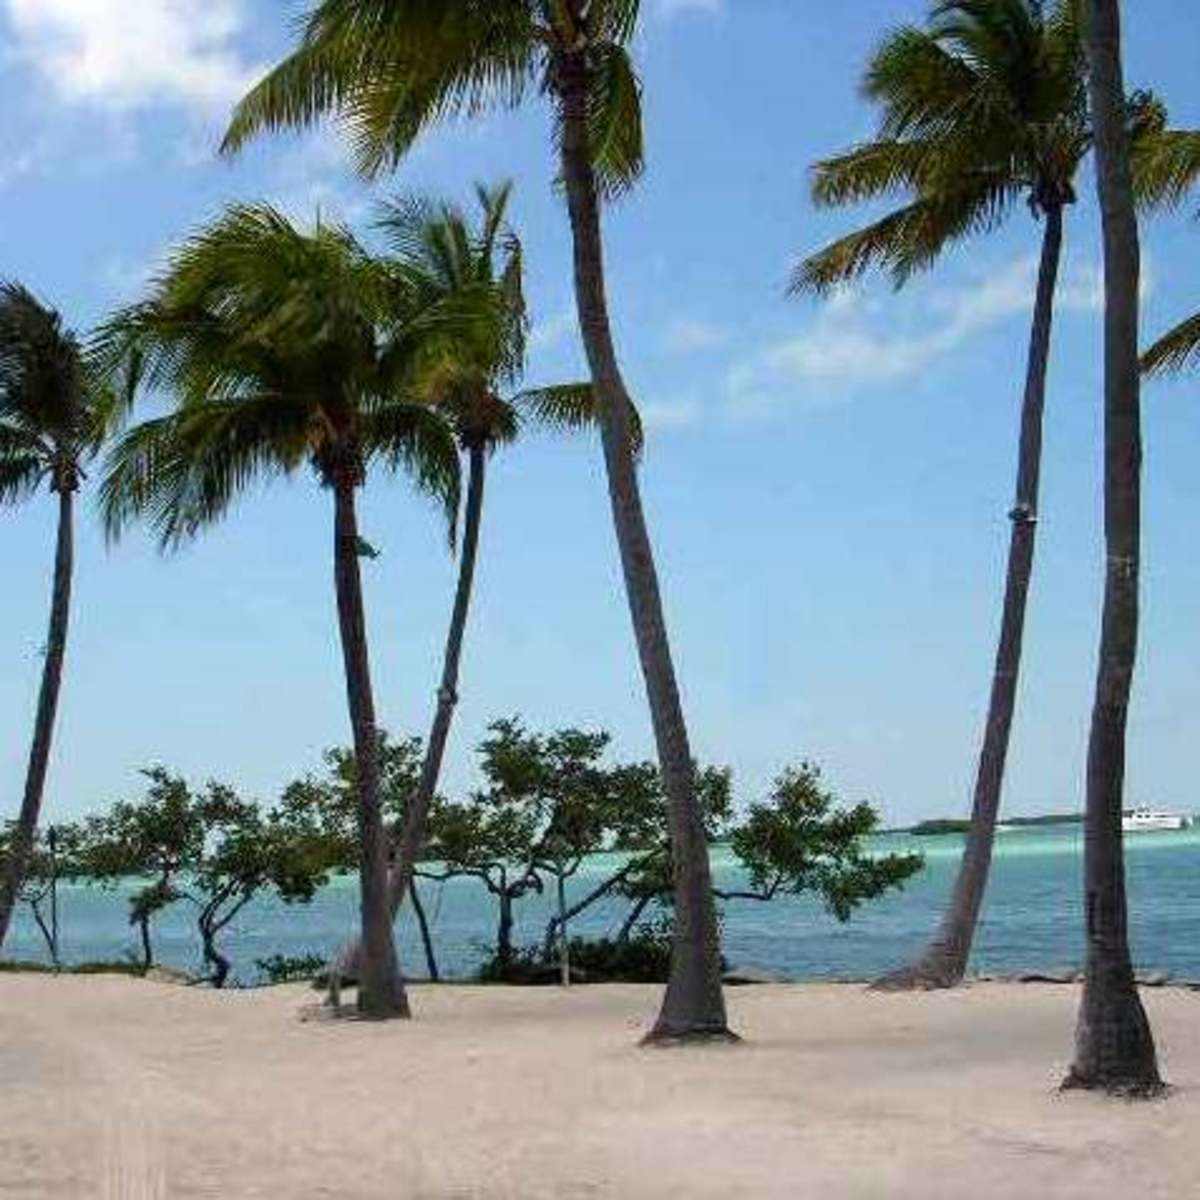 Coconut Palms on the beach in the Florida Keys